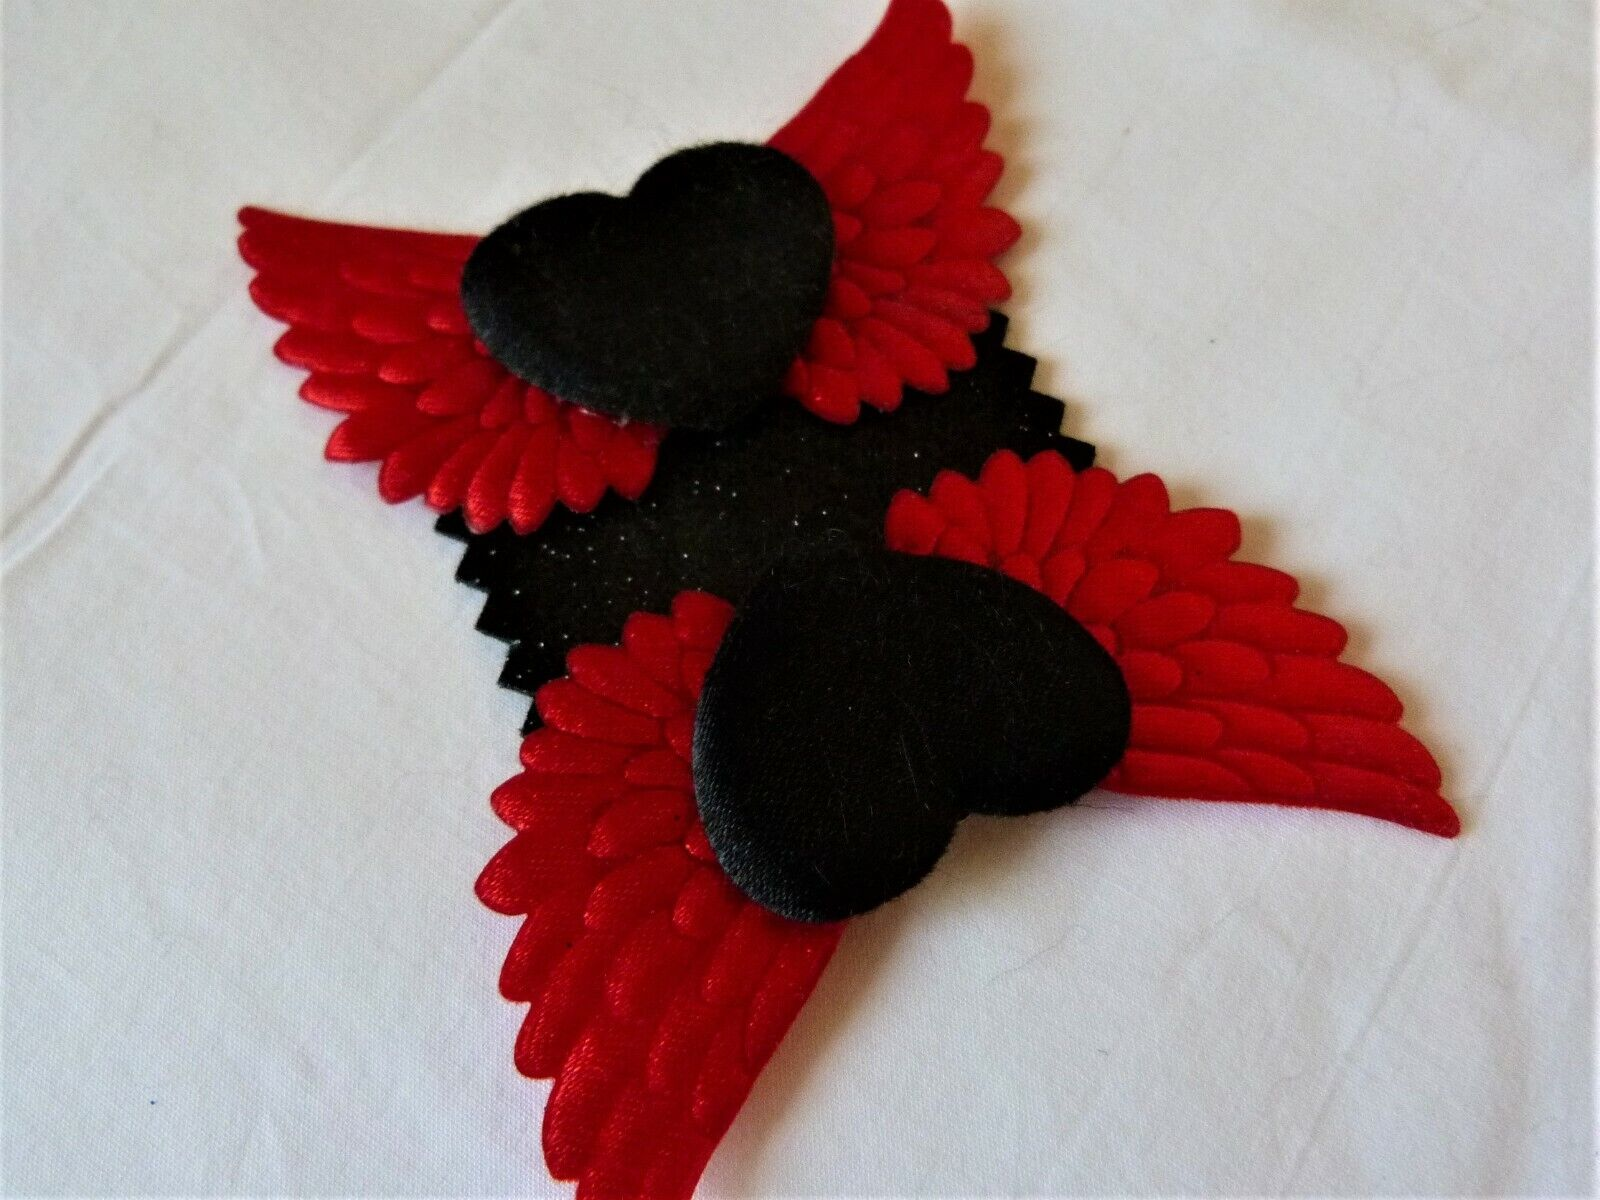 Black Satin Hearts & Red Wings Shoe Clips - Handcrafted, Whitby, Rock'n' Roll